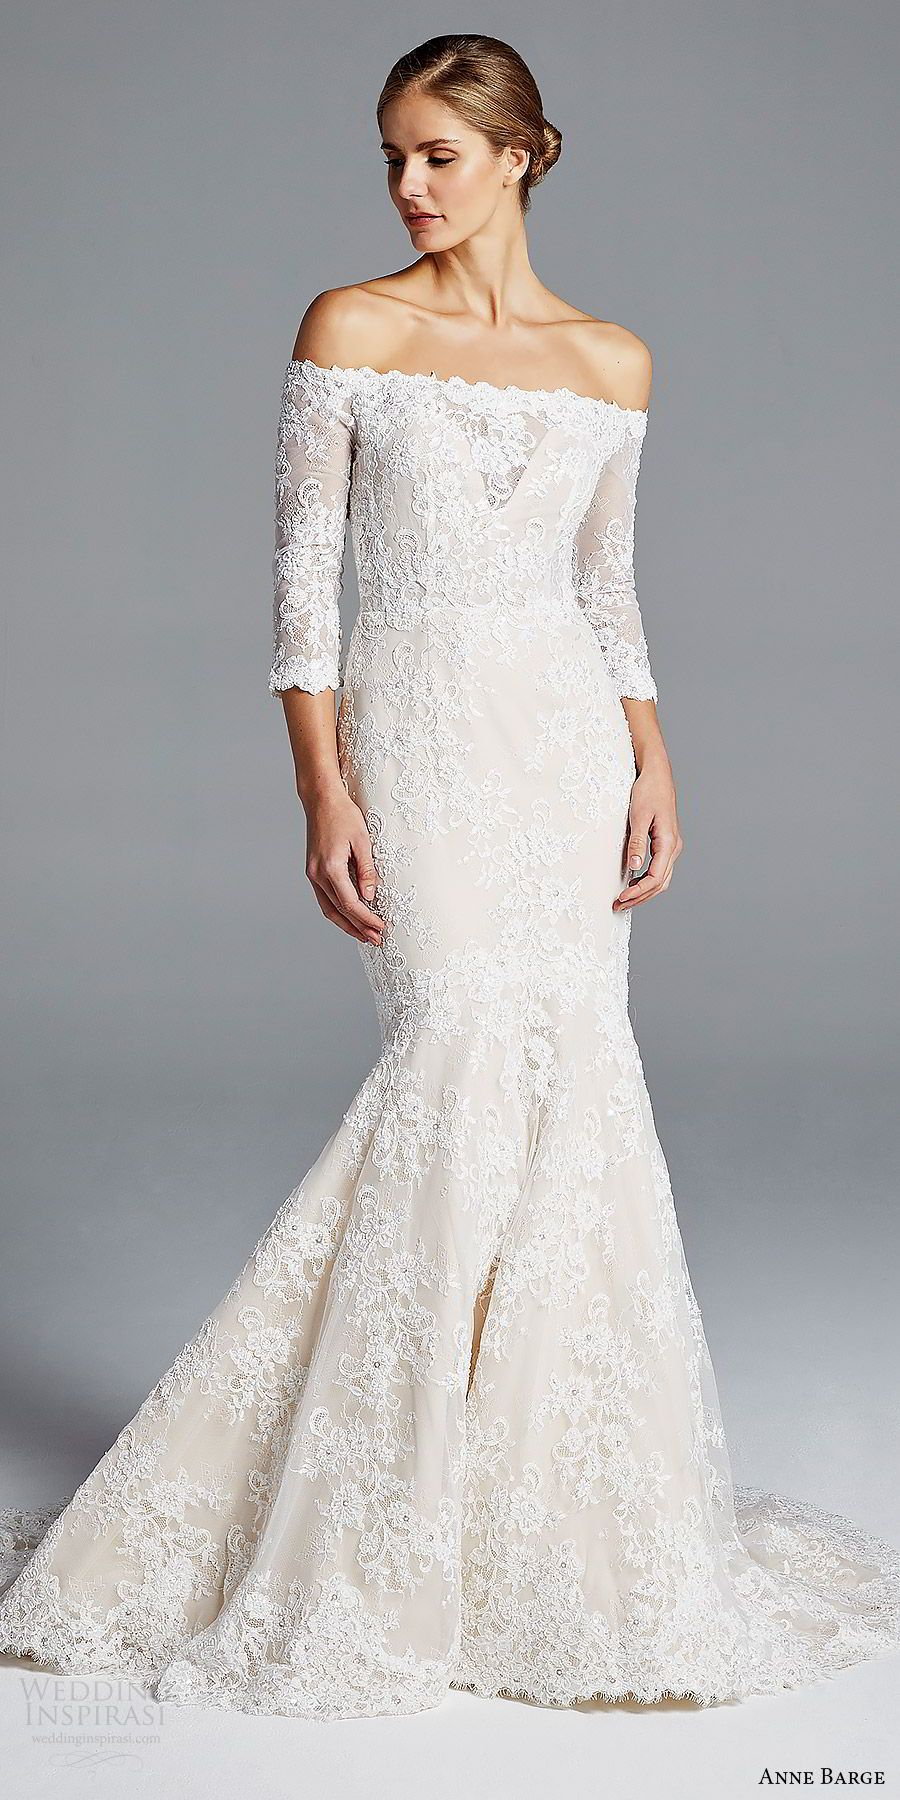 Wedding dresses with lace sleeves off the shoulder  Anne Barge Spring  Wedding Dresses  Wedding Dresses  Pinterest